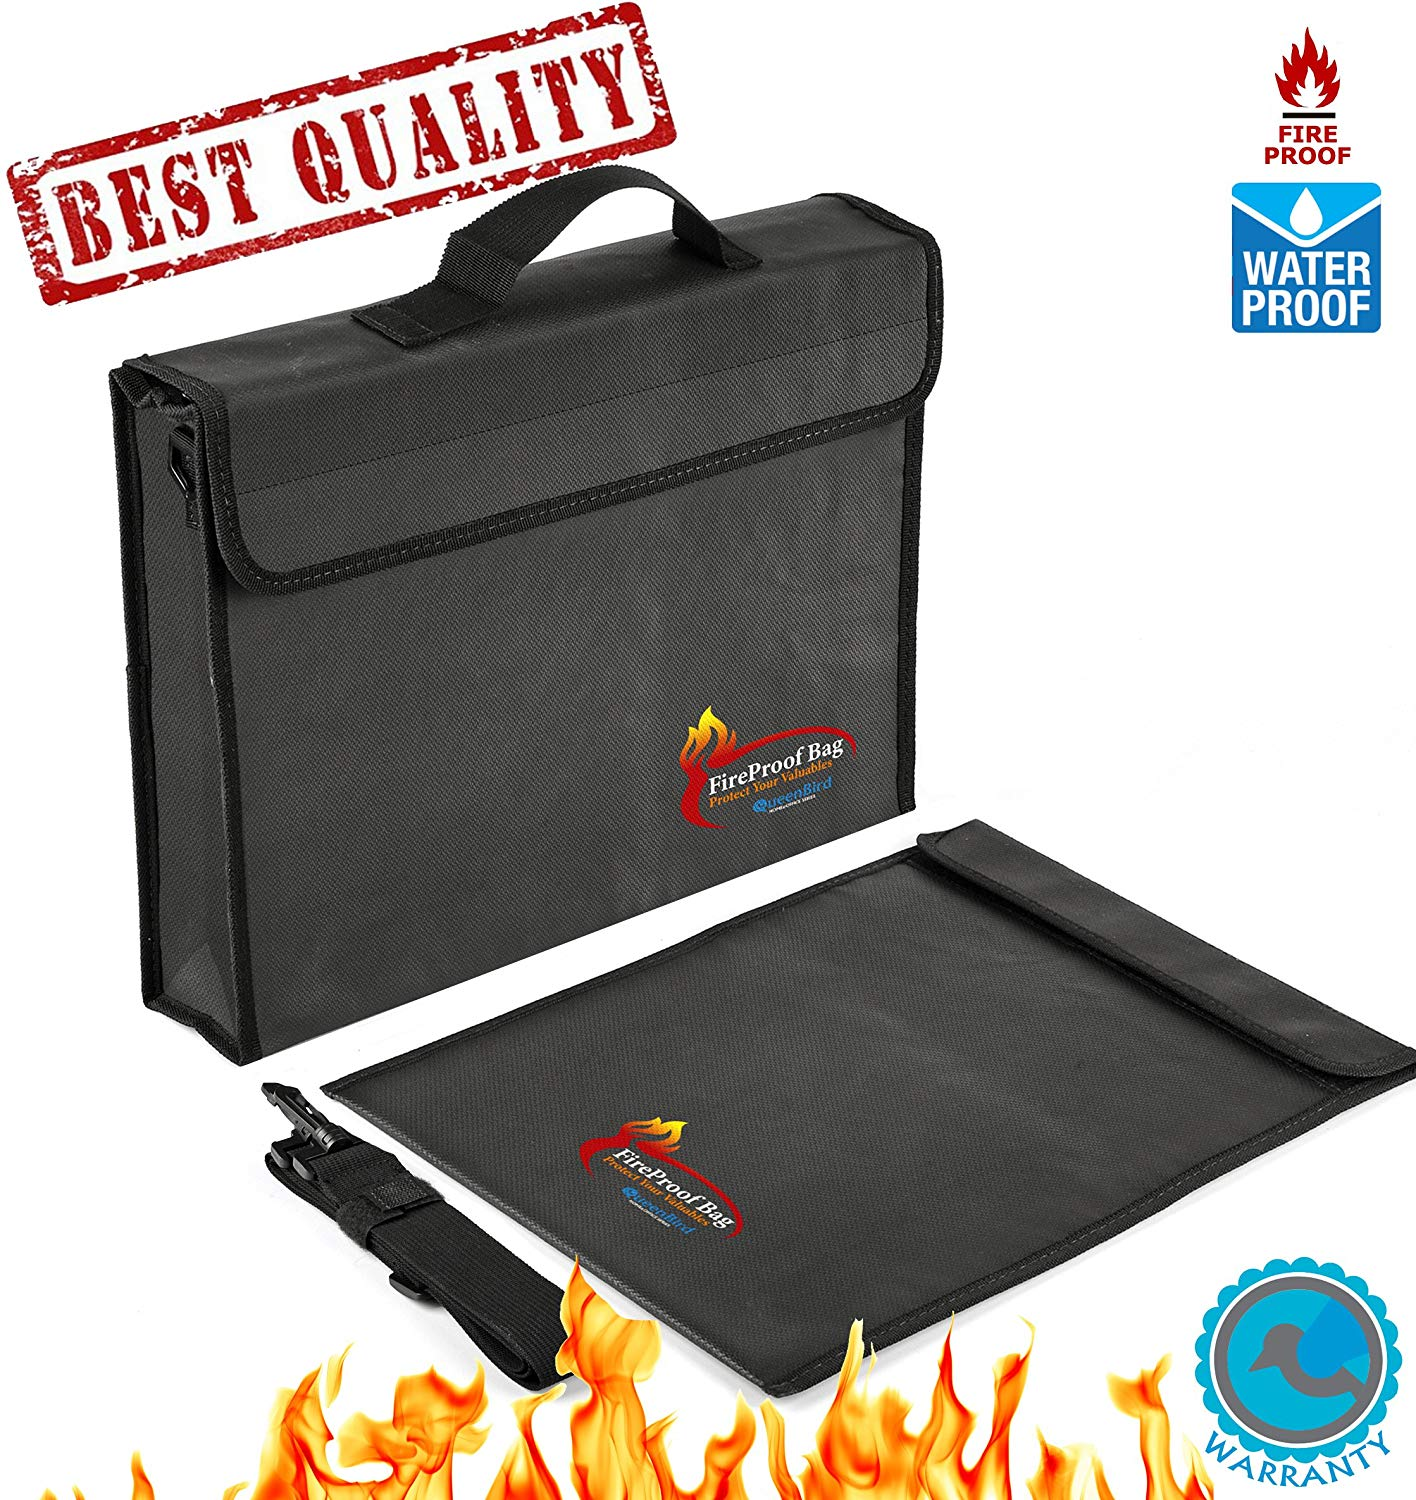 "2 PCS Fireproof Bags for Docs&Valuables by QueenBird | Fire&Water Resistant Bag Set | 2 Different Sizes (15""x11""x2.5""+15""x11"" flat) 